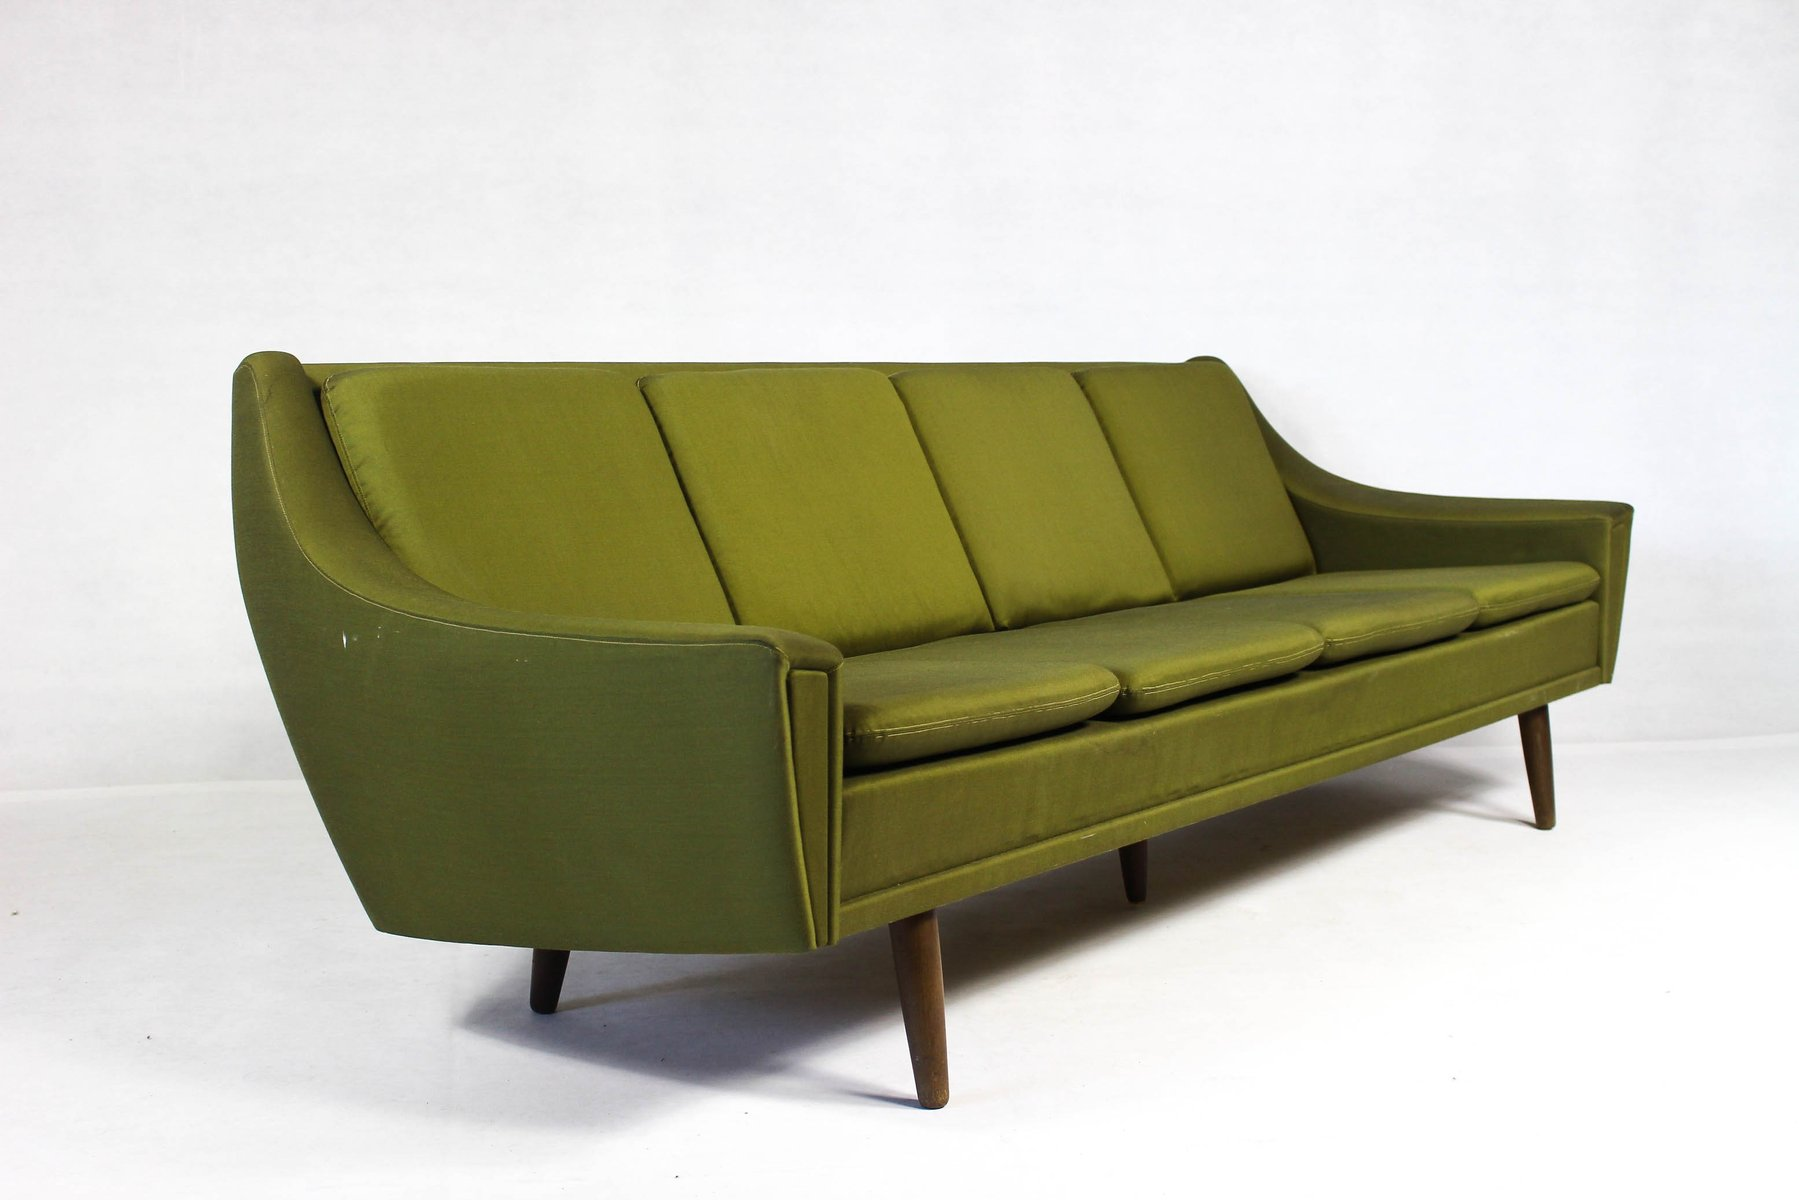 Mid century danish modern sofa for sale at pamono for Mid century danish modern chair